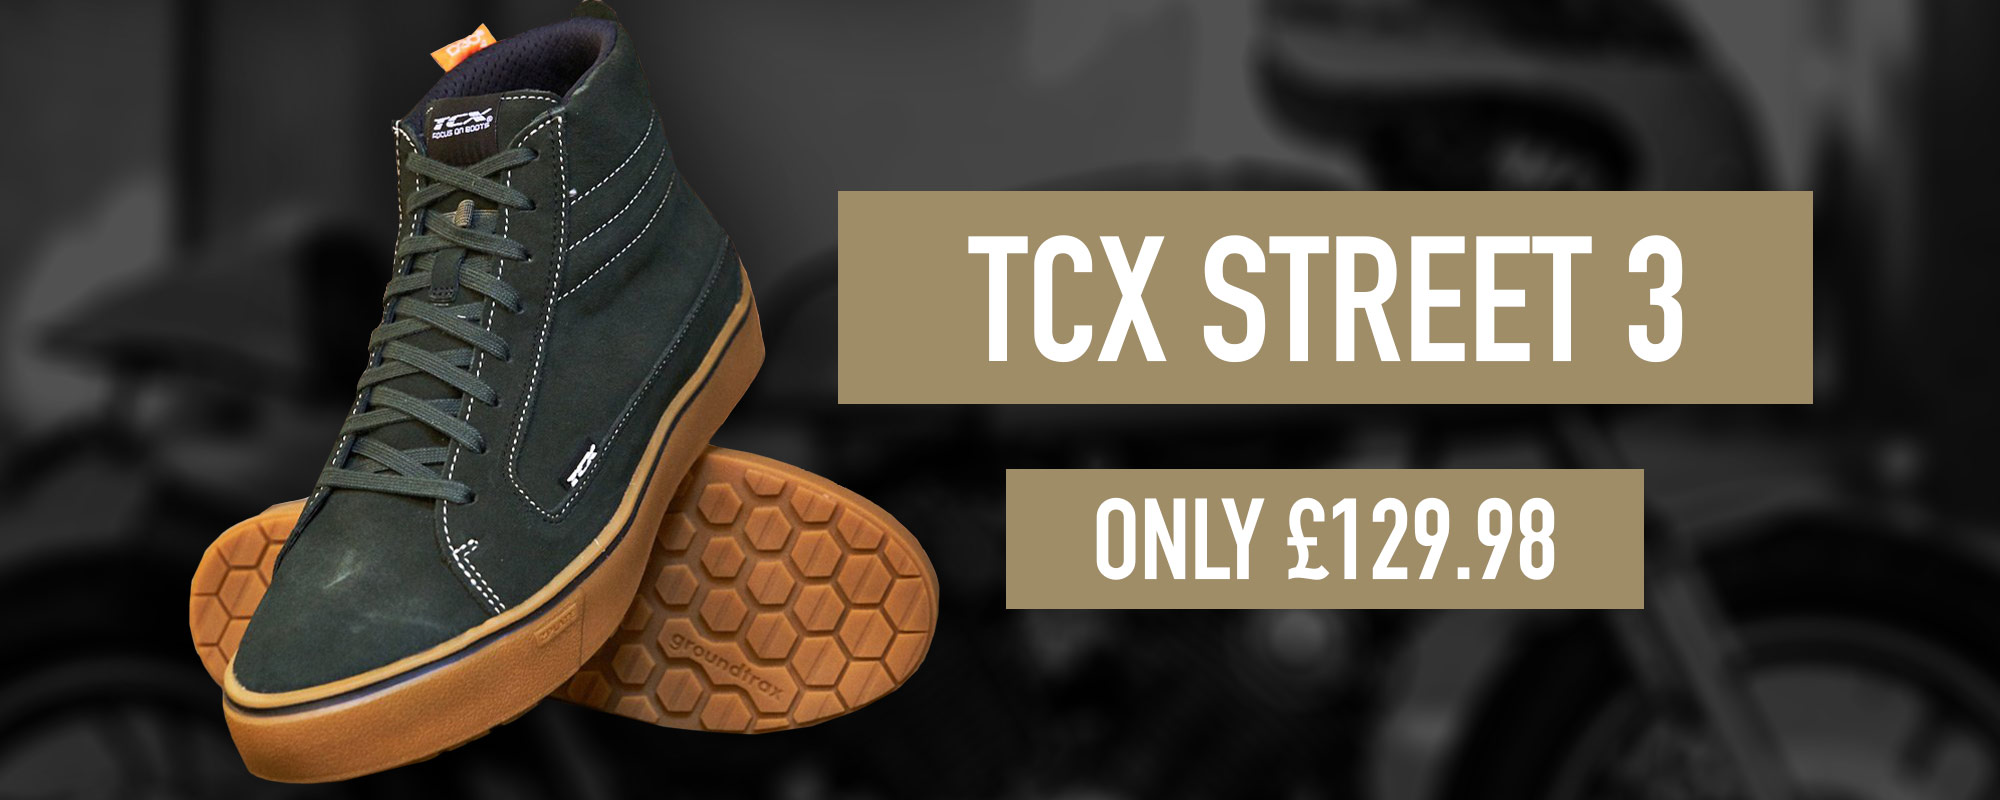 TCX Street 3 Motorcycle Trainer Riding Boots